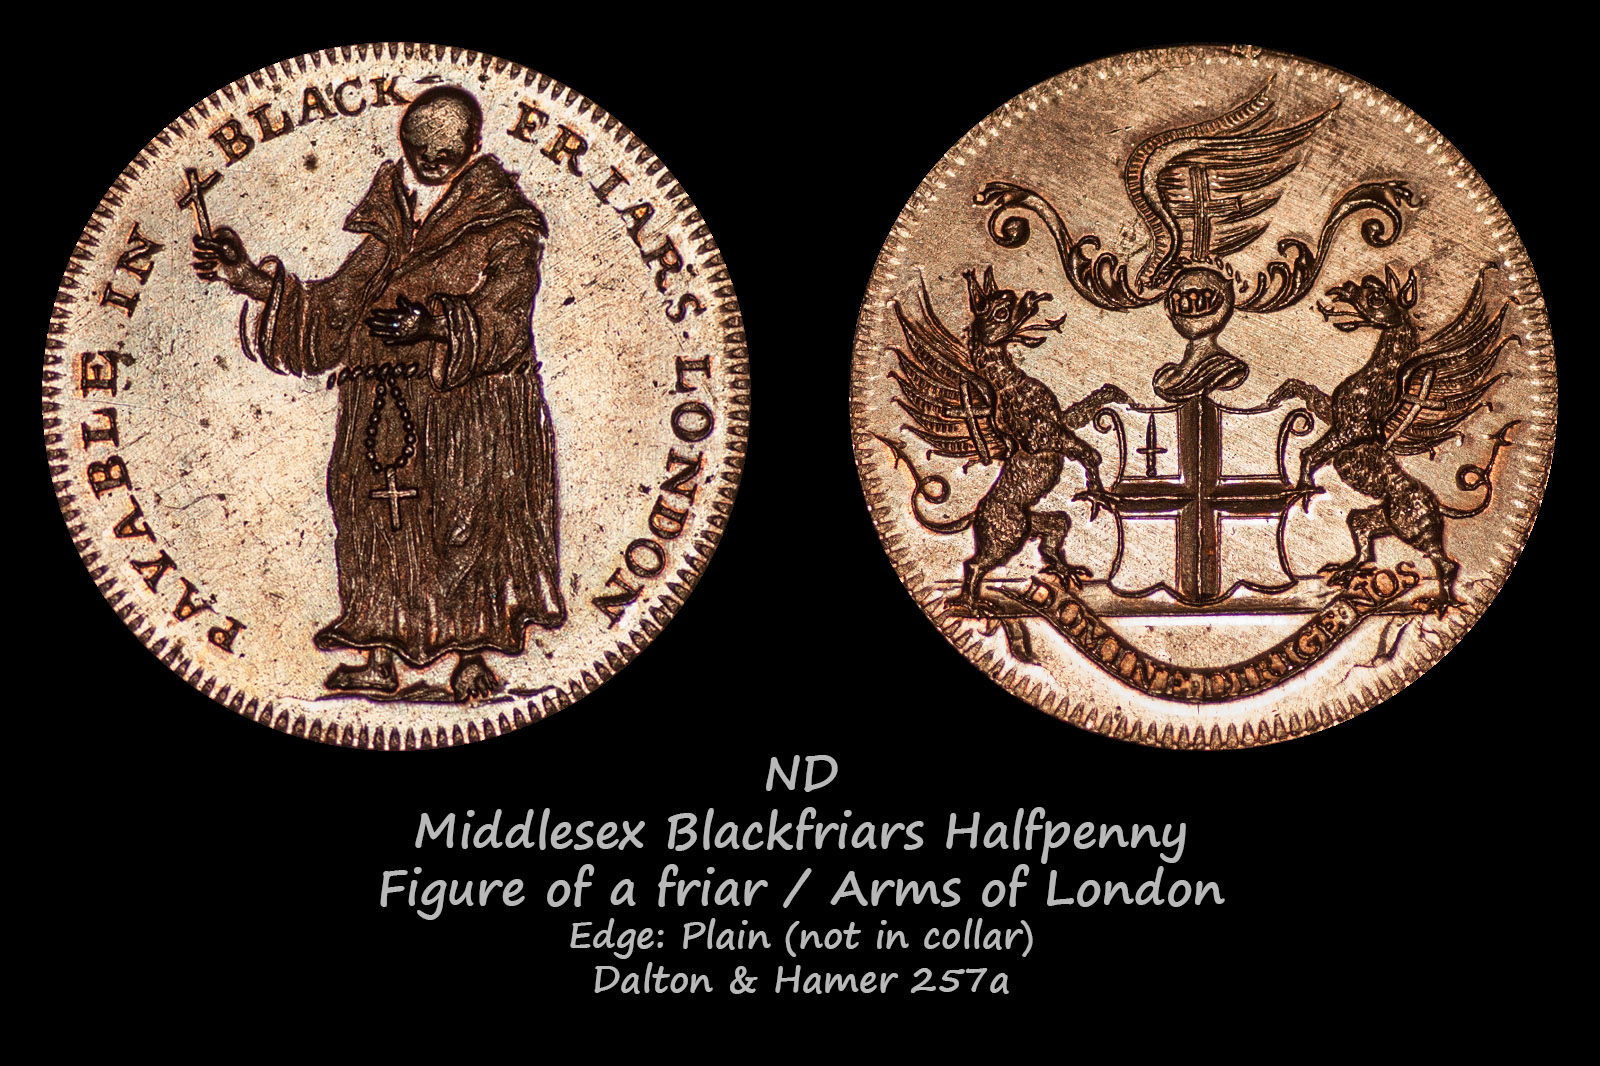 Middlesex Blackfriars Halfpenny D&H257a